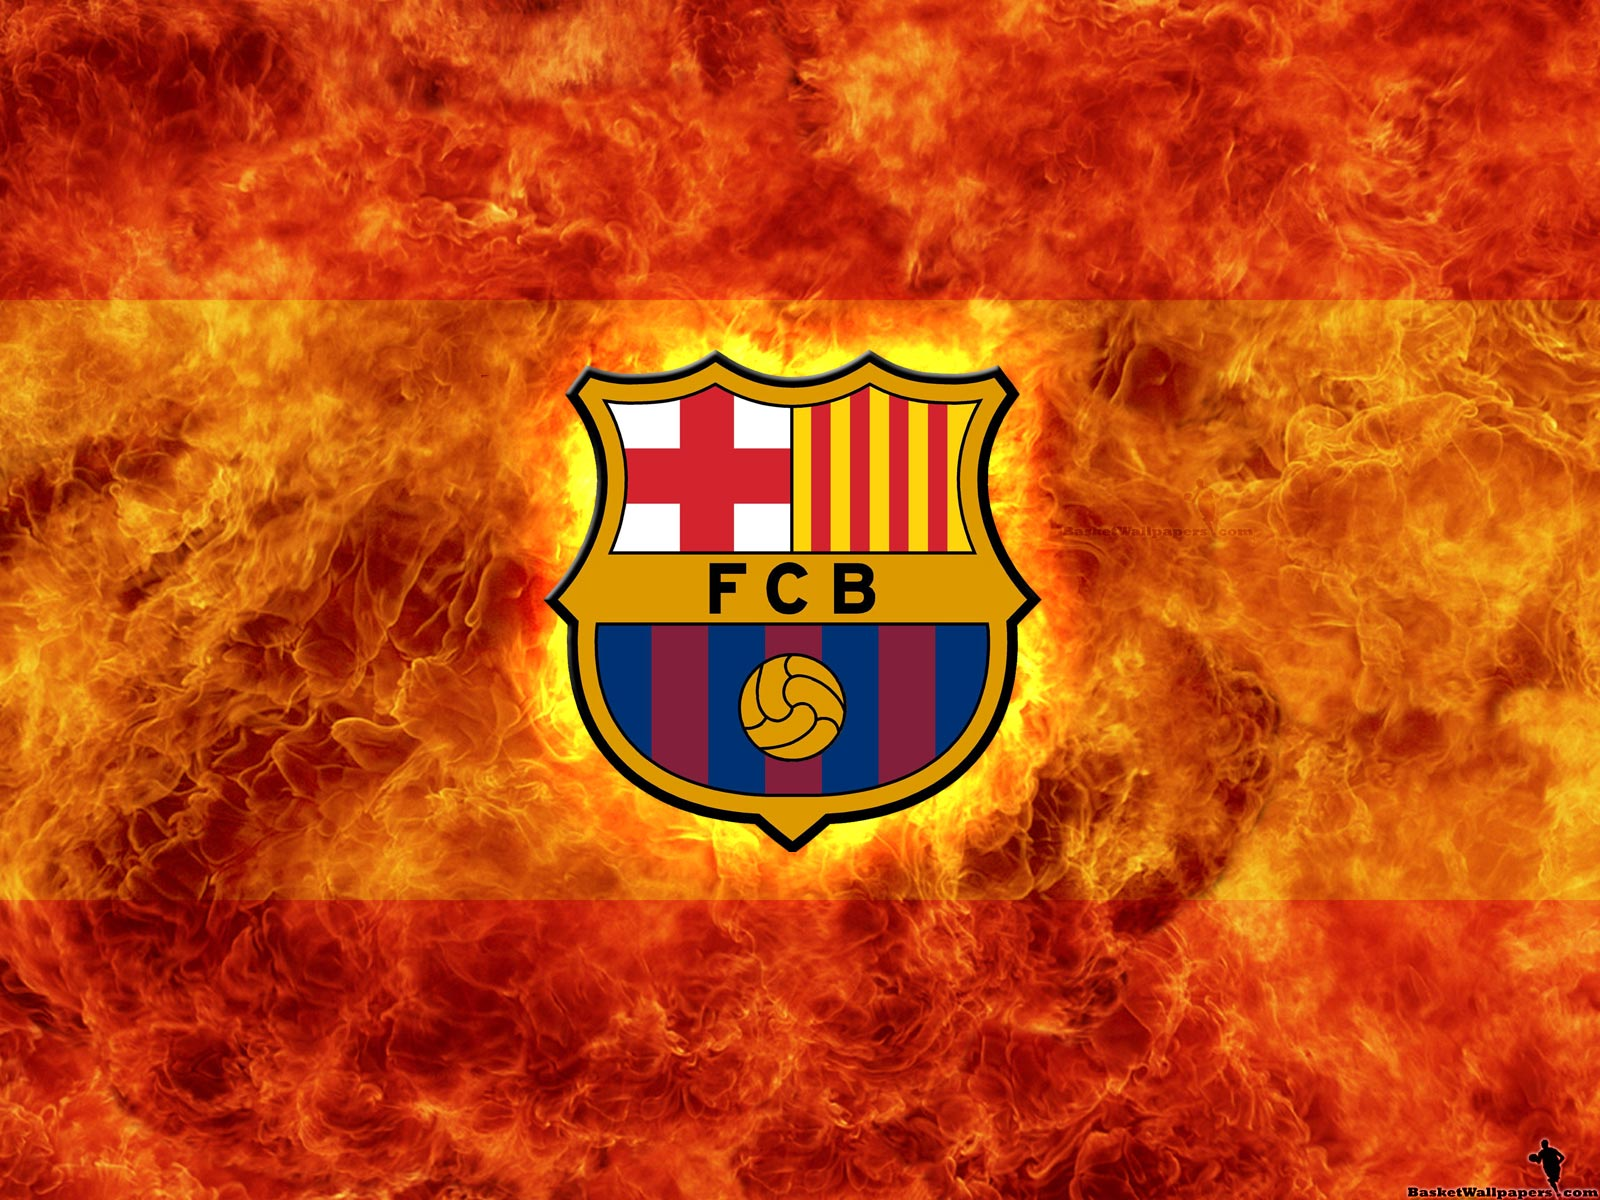 Here's also new wallpaper of Regal FC Barcelona, current Euroleague